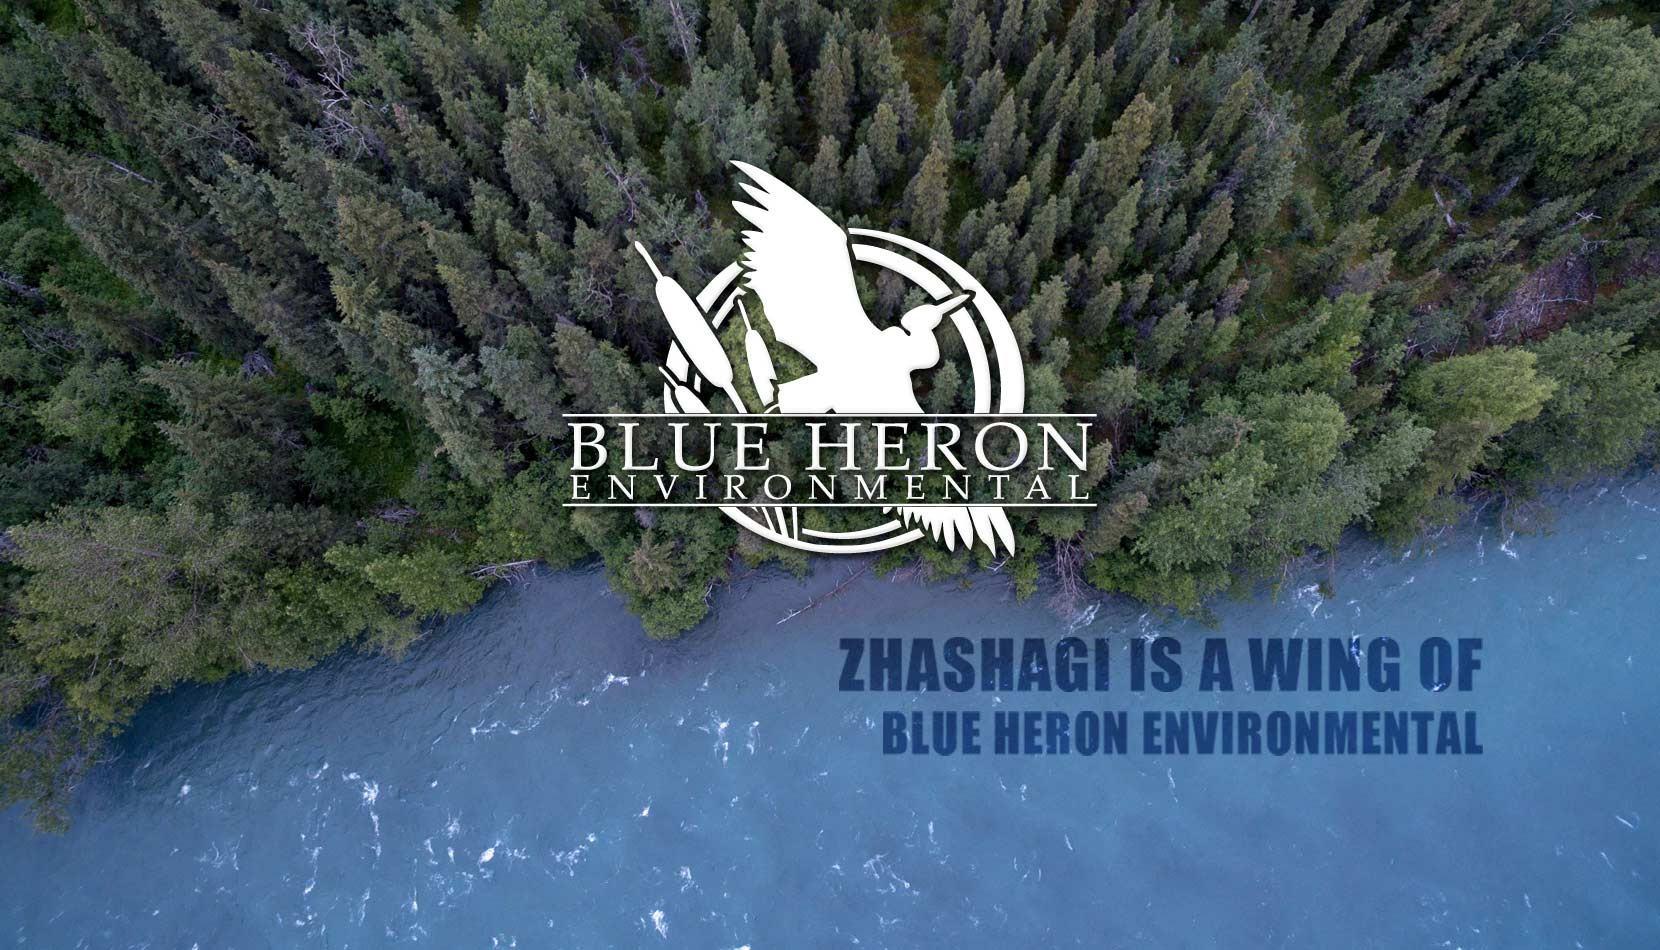 Zhashagi - A Wing of Blue Heron Environmental